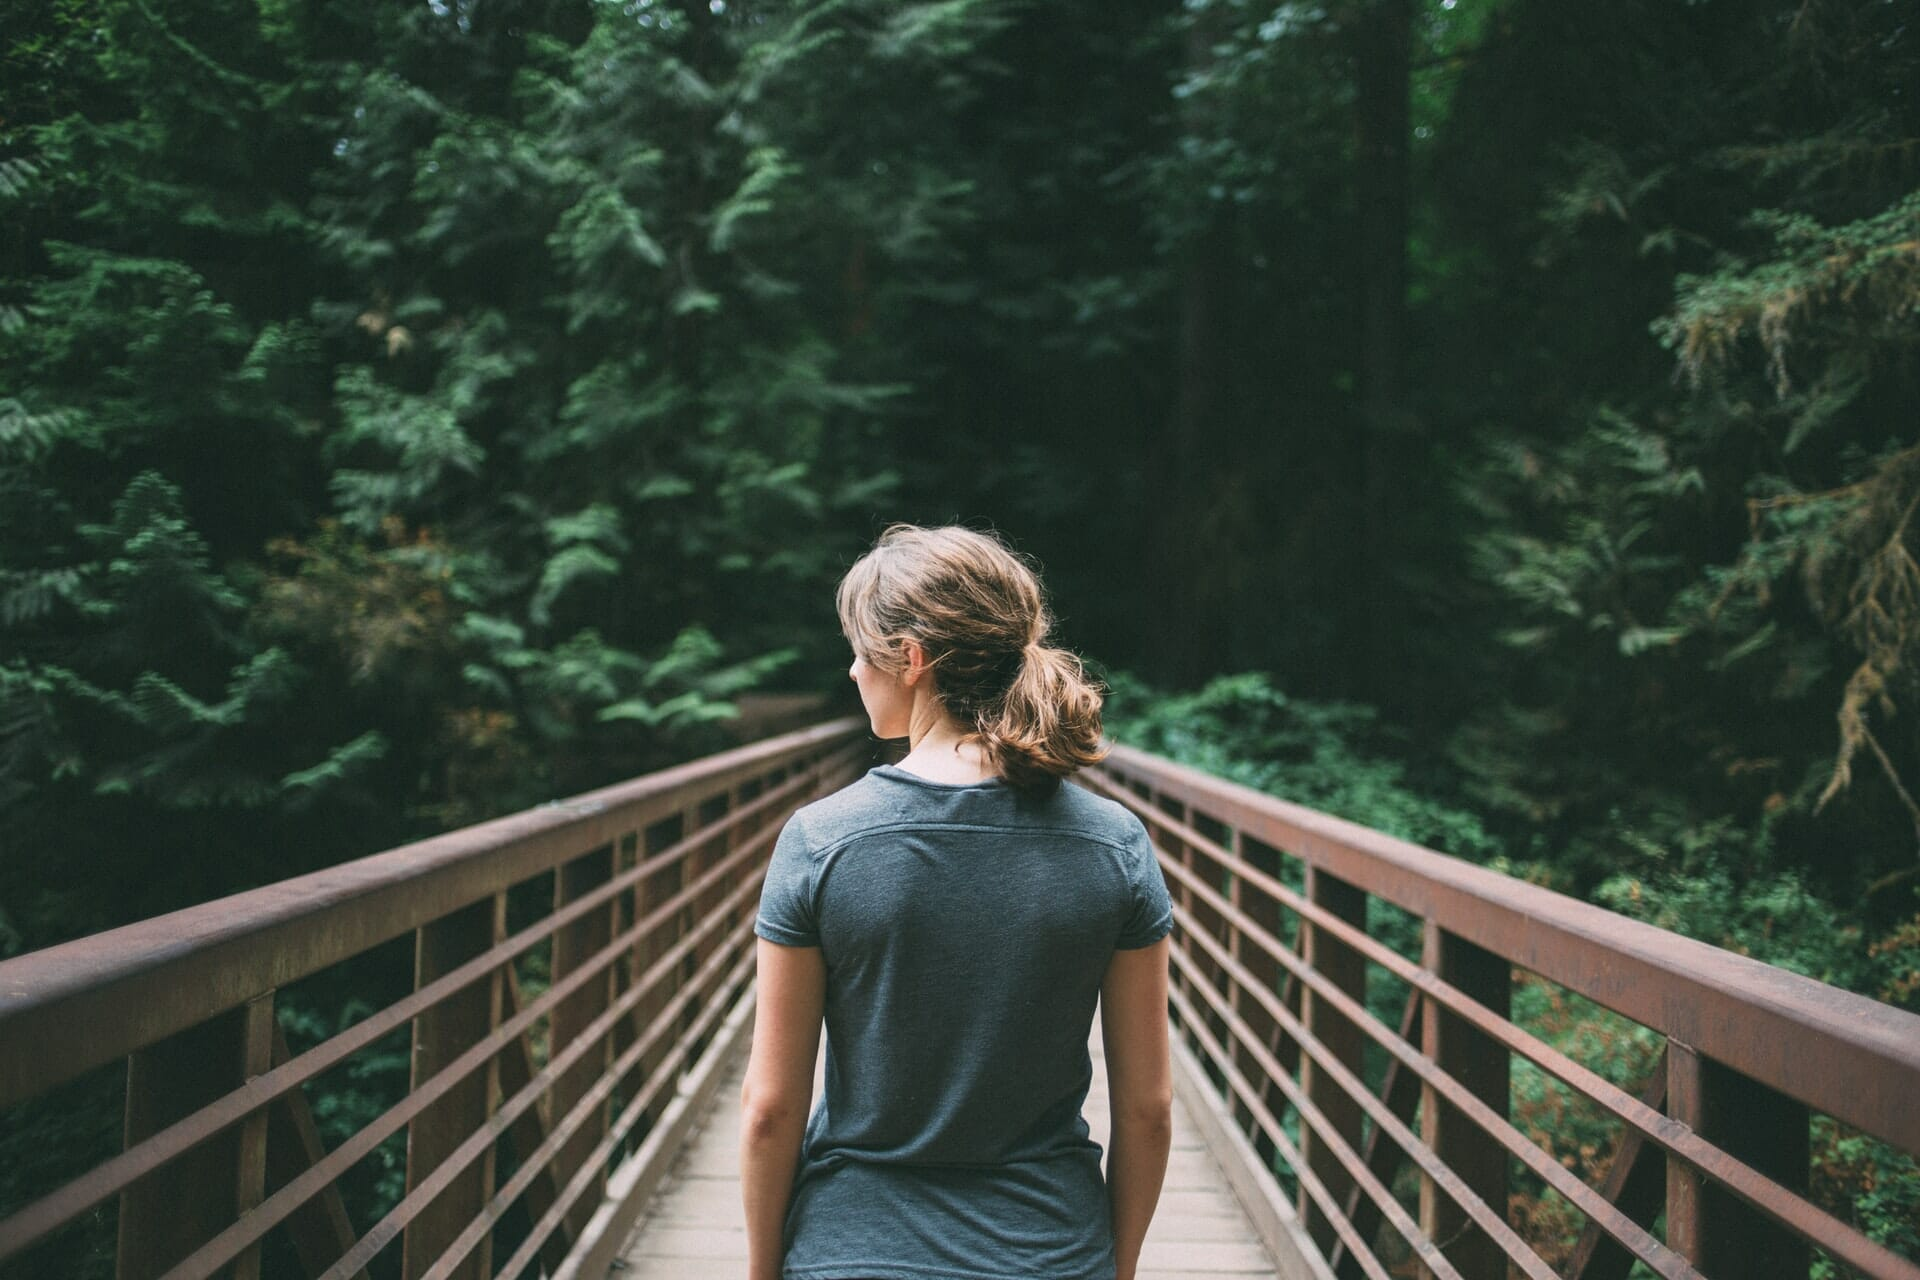 Person walking on bridge towards a forest.